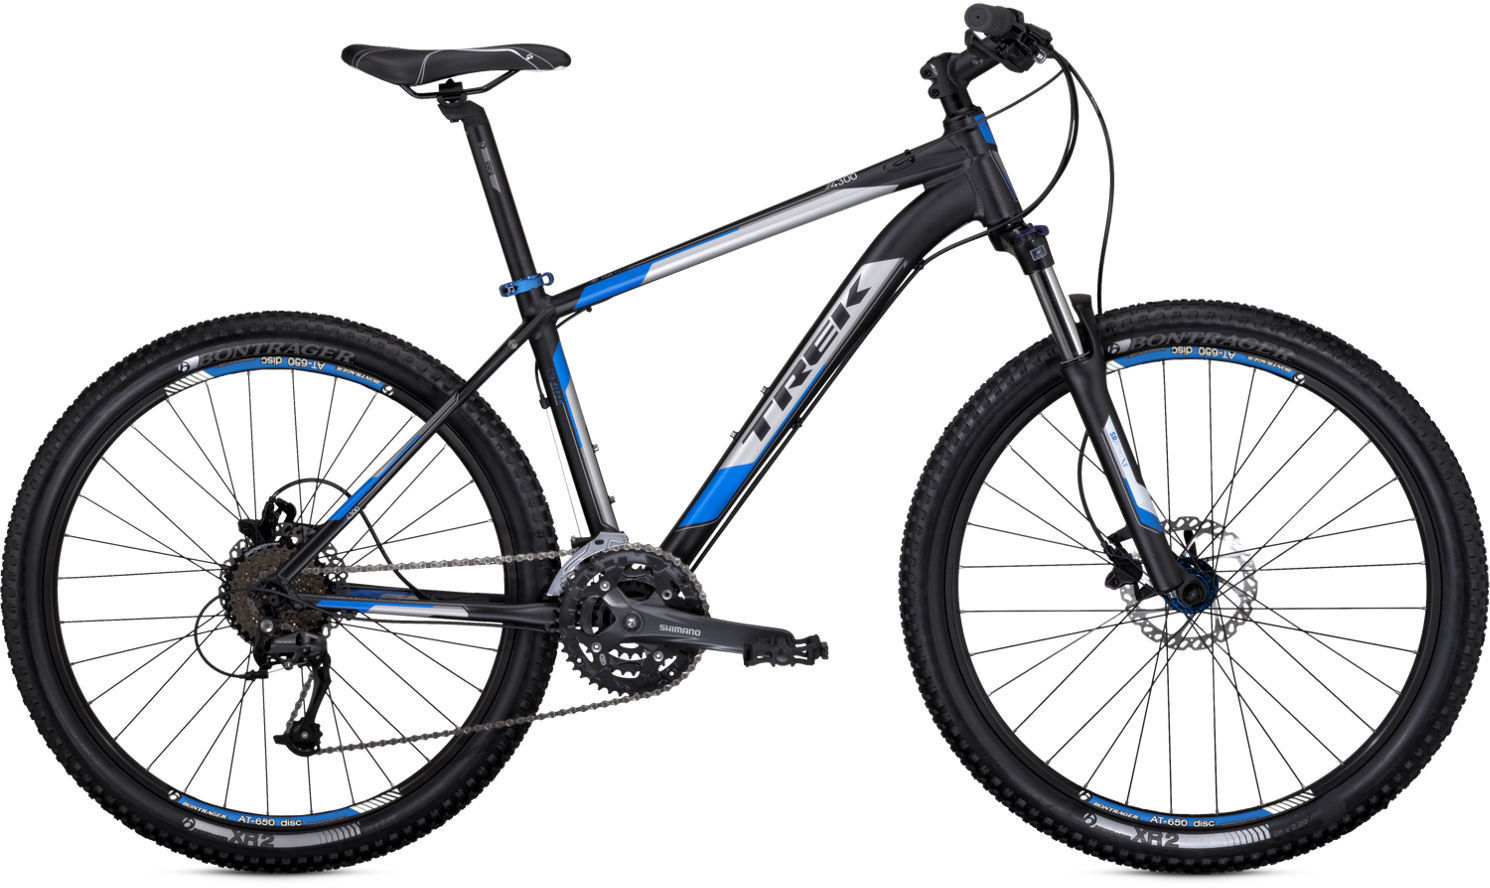 Trek 4300 Disc 2013 Review The Bike List